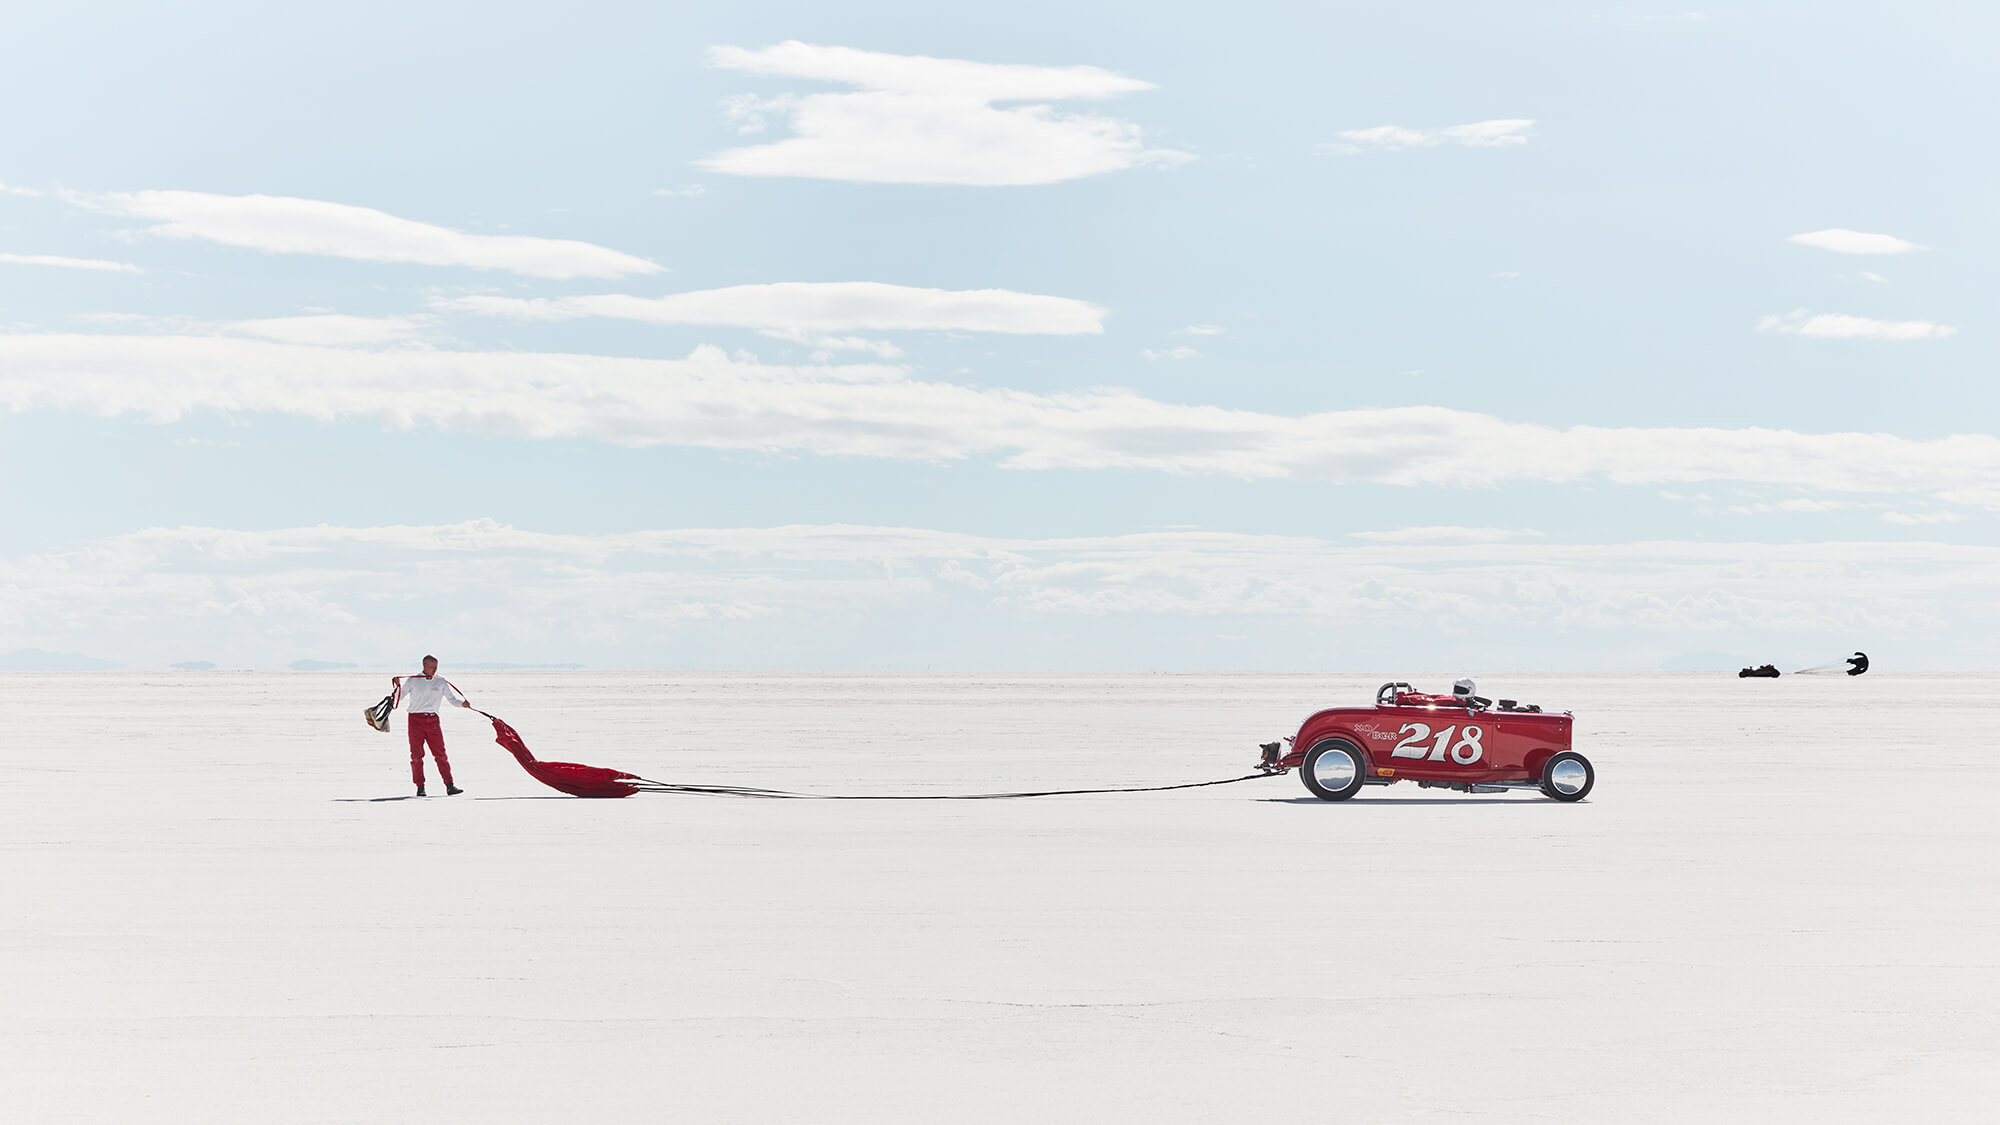 Unified Content, Aaron Cobb, Bonneville, Cars, photography, Travel, Series, Racing, Drag racing, Bonneville, Bonneville cars, bonneville car racing, production, toronto, toronto production